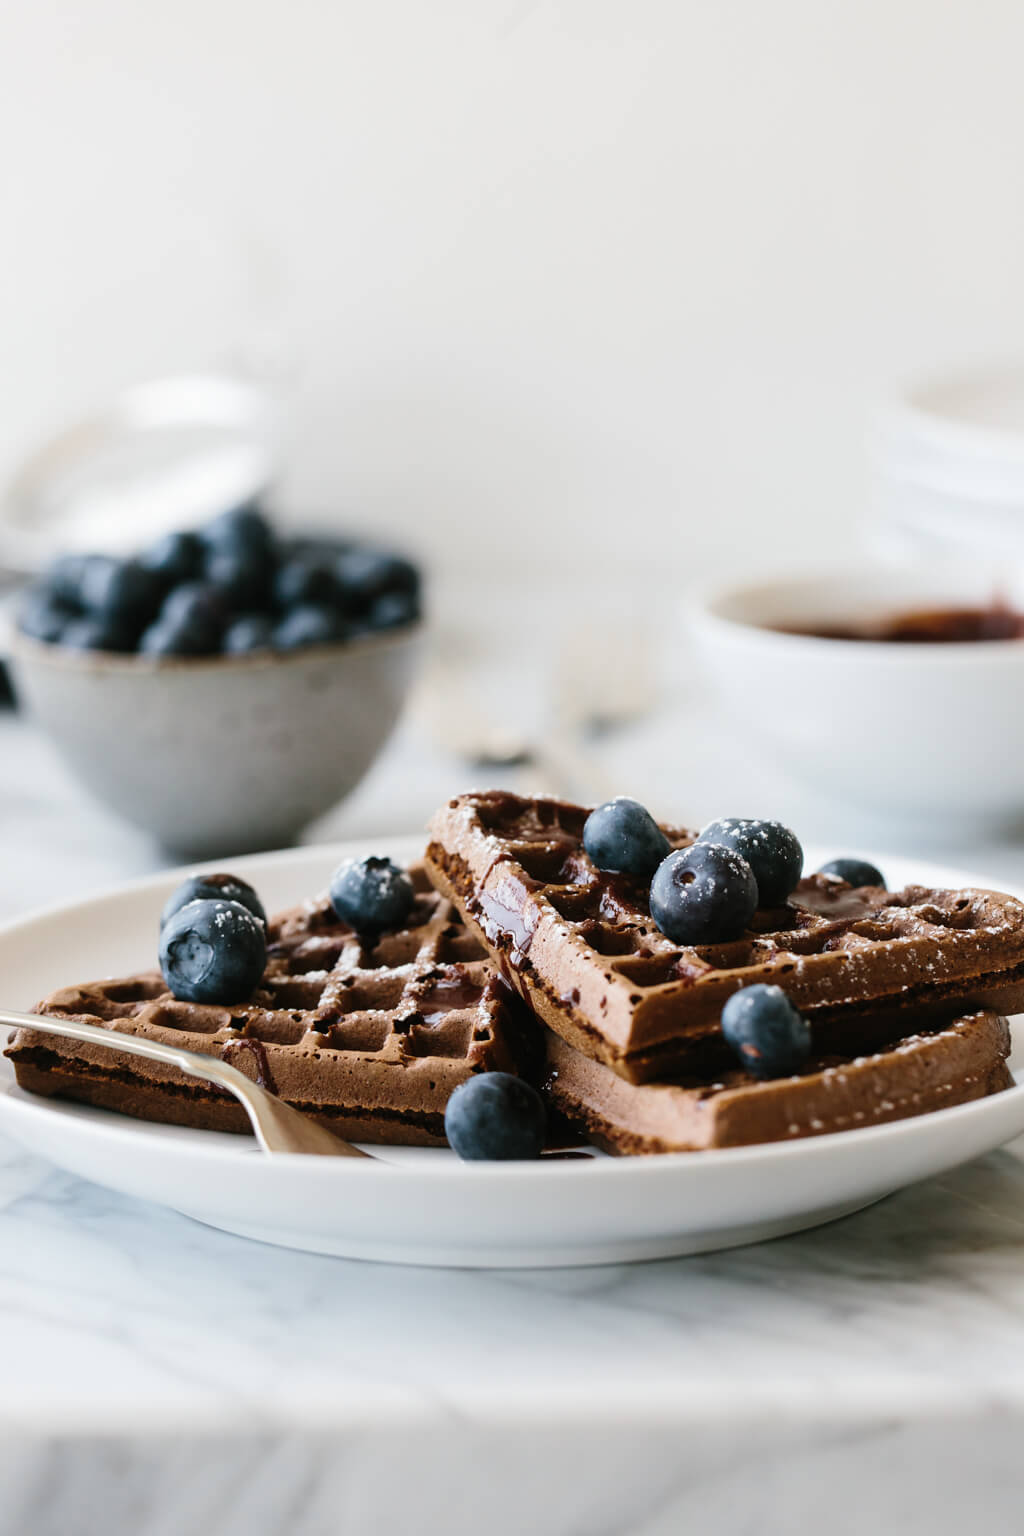 (gluten-free, paleo) These chocolate waffles are utterly delicious and decadent. Made with raw cacao powder they're a family favorite breakfast recipe. Watch the video to learn how to make these paleo waffles.